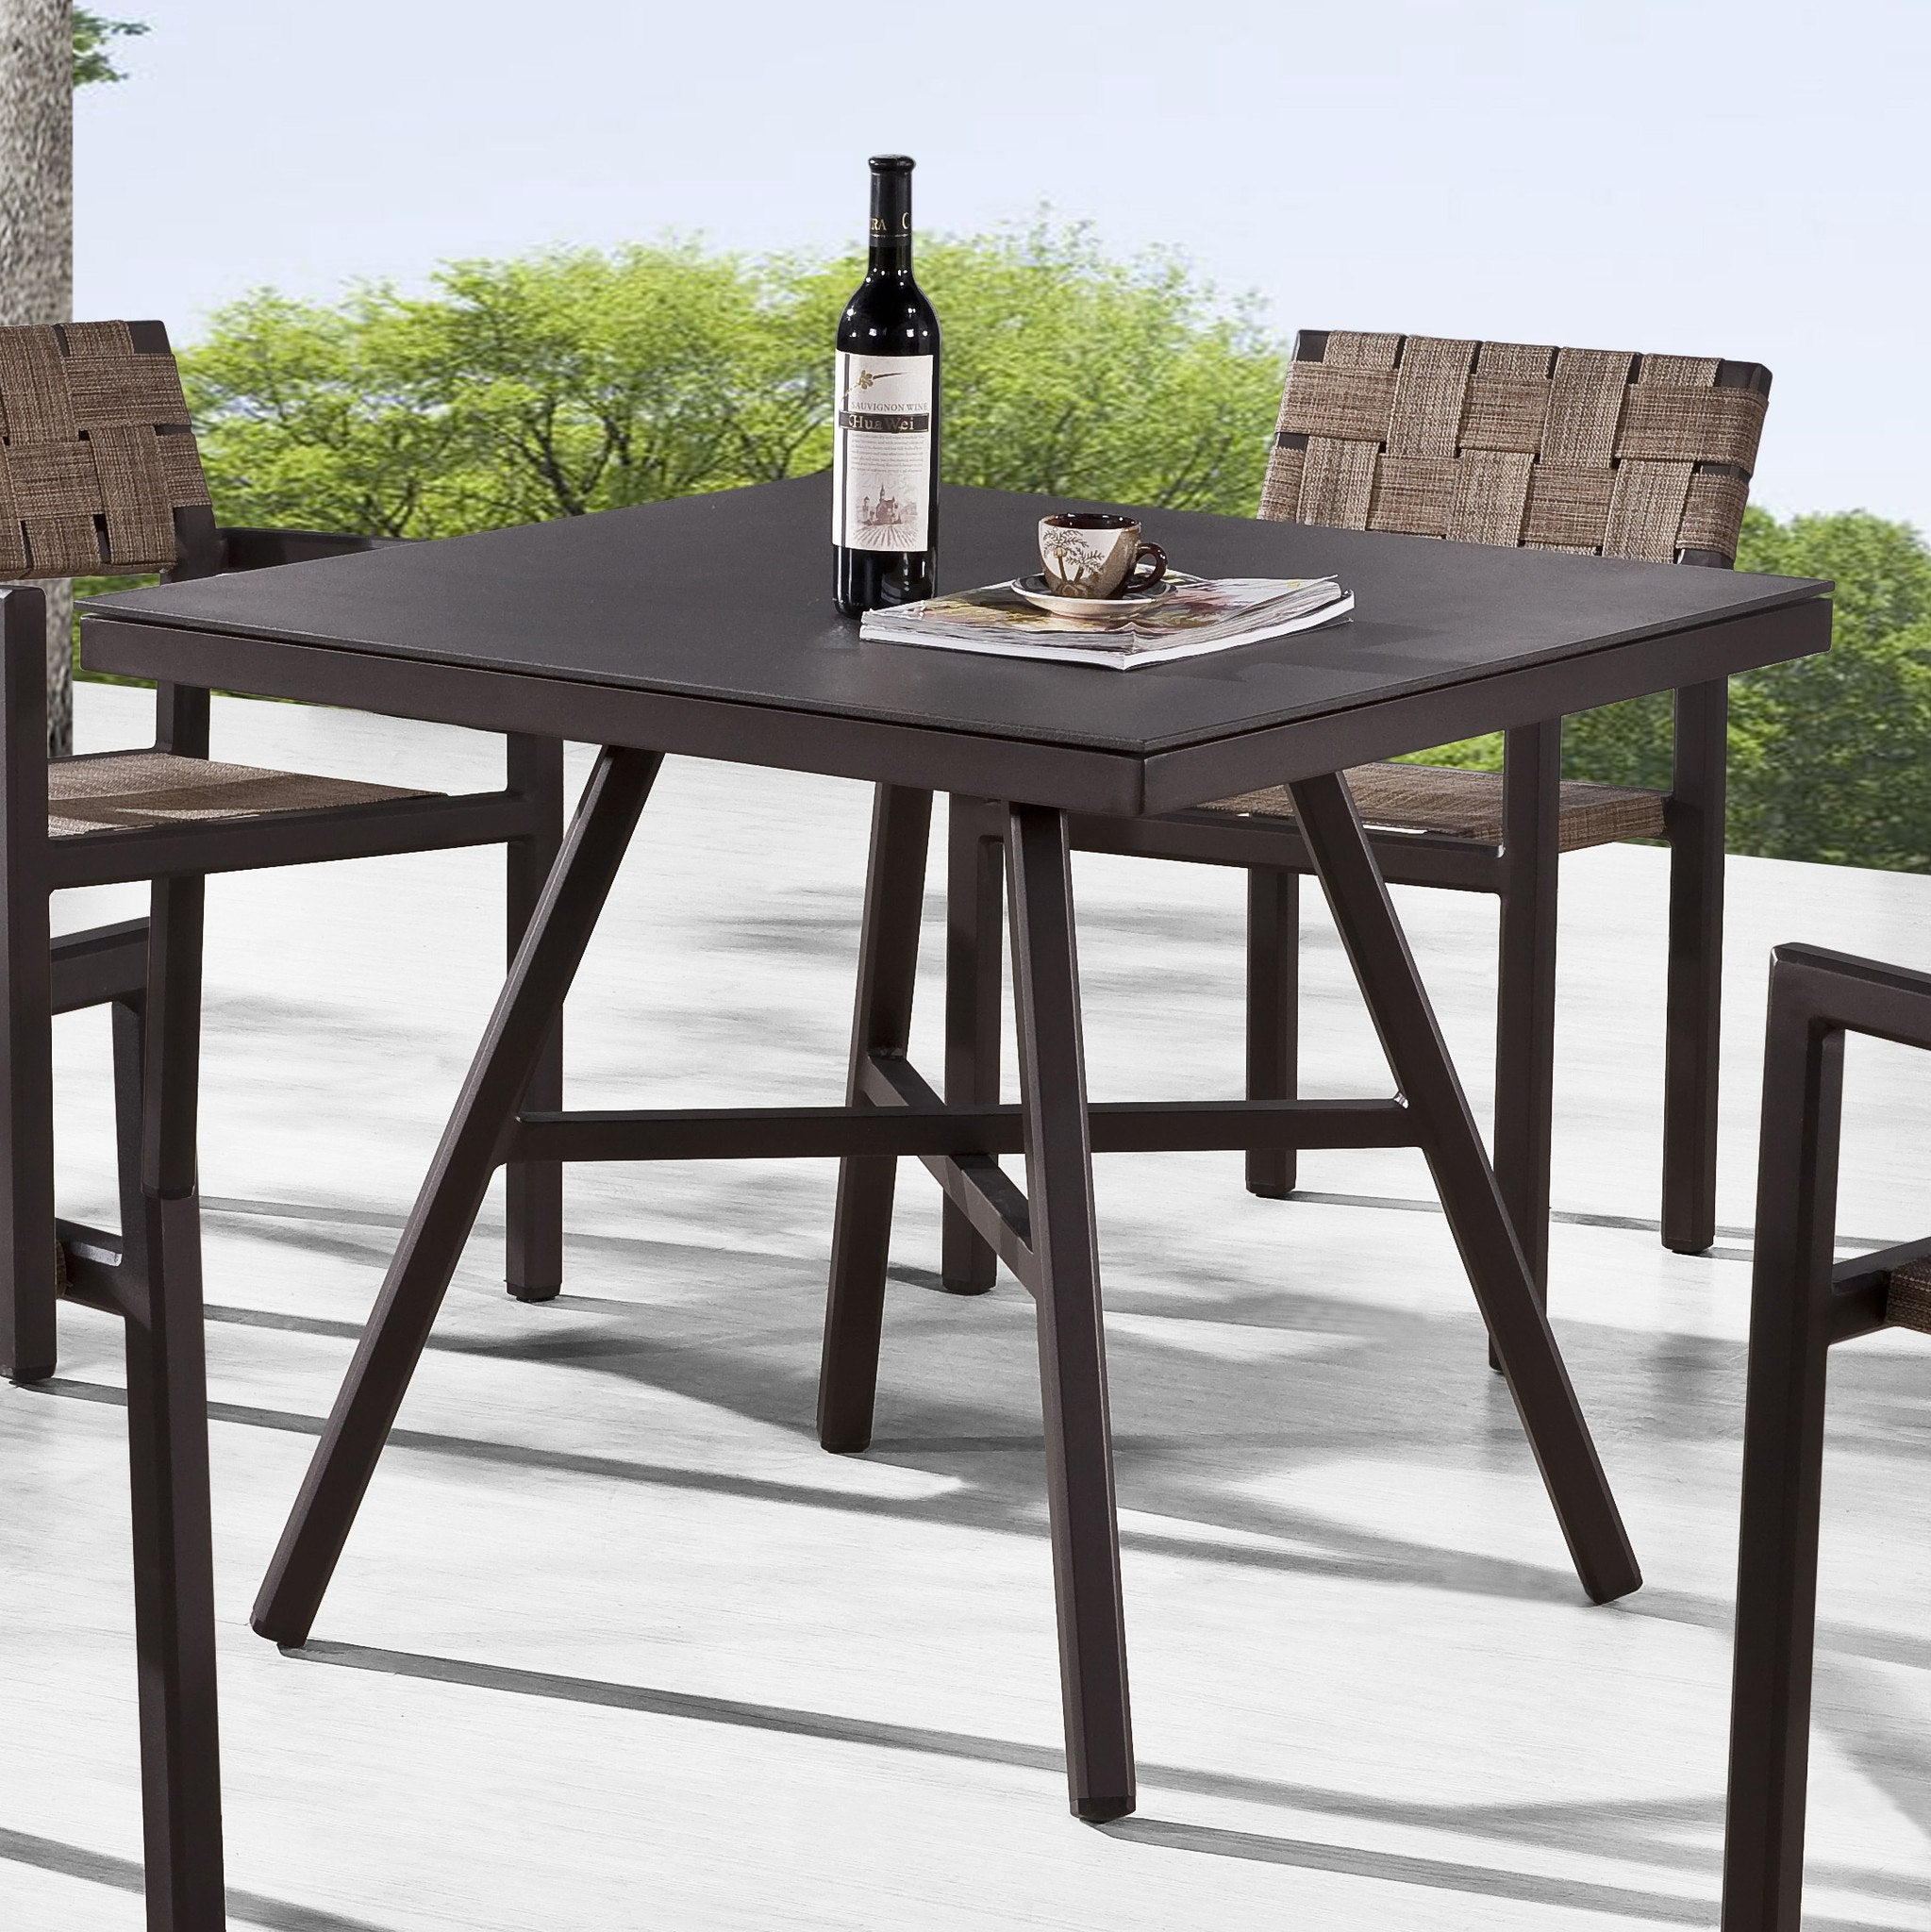 Contract quality outdoor furniture dining table glass top